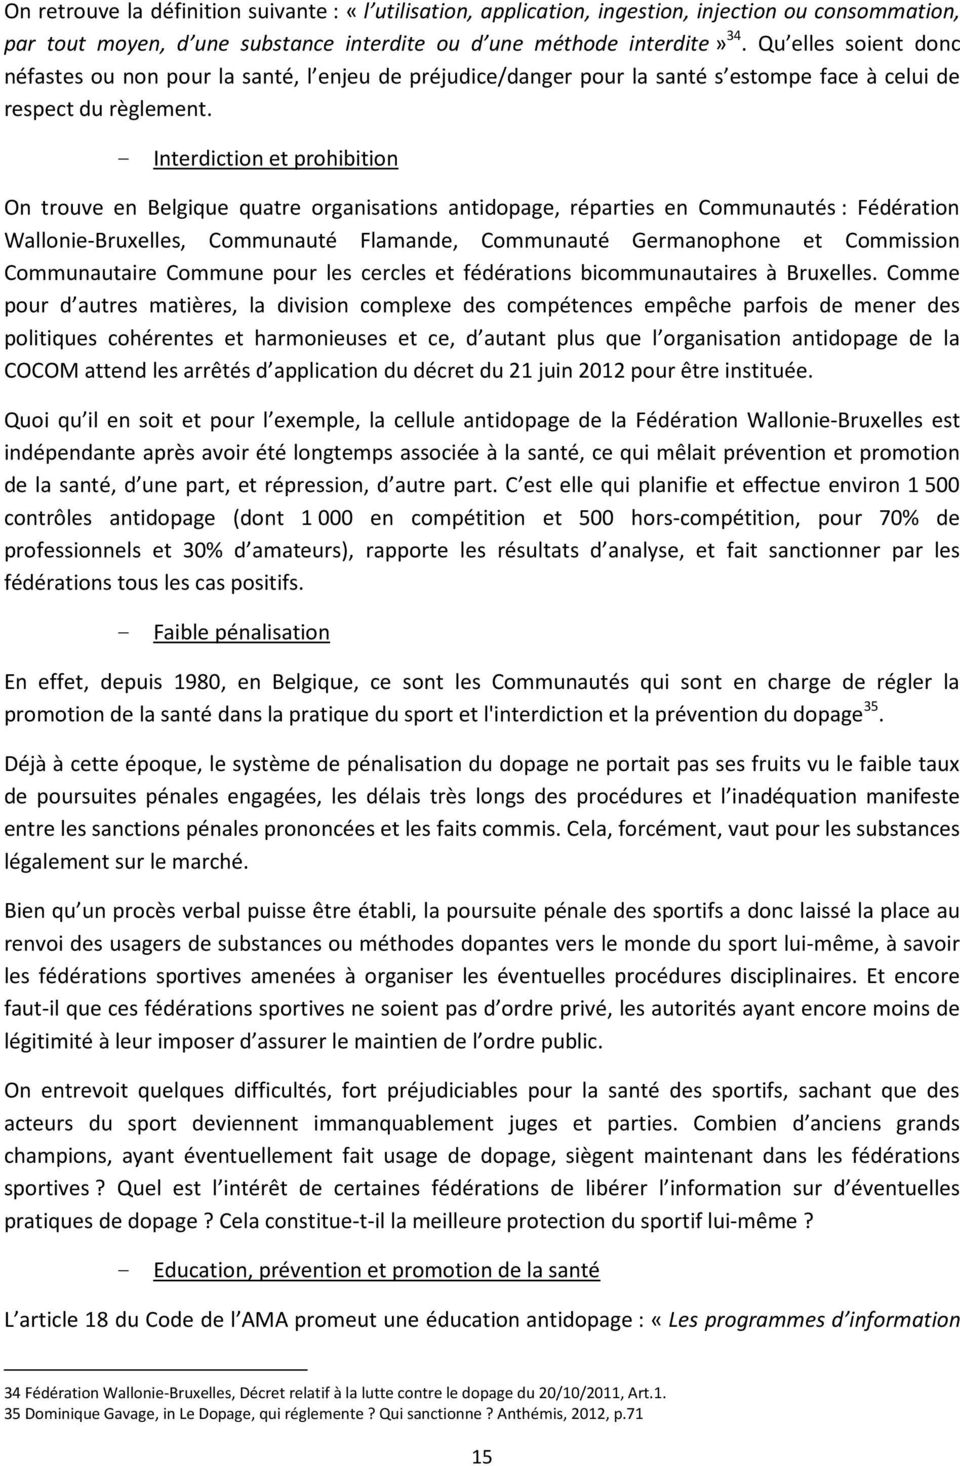 - Interdiction et prohibition On trouve en Belgique quatre organisations antidopage, réparties en Communautés : Fédération Wallonie-Bruxelles, Communauté Flamande, Communauté Germanophone et